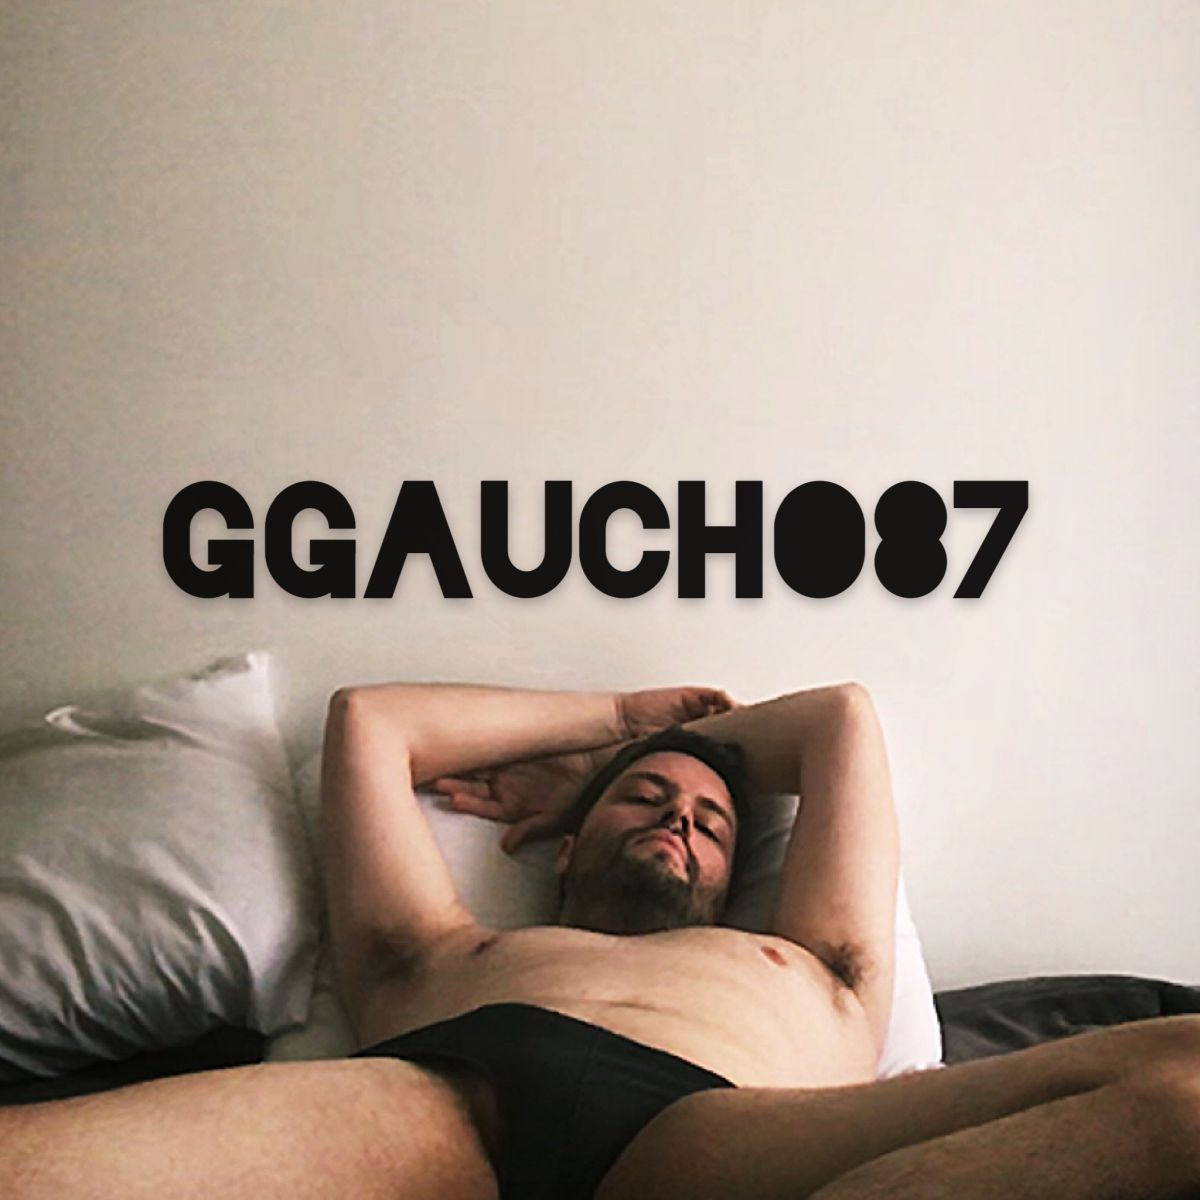 Free nudes of Ggaucho87 onlyfans leaked